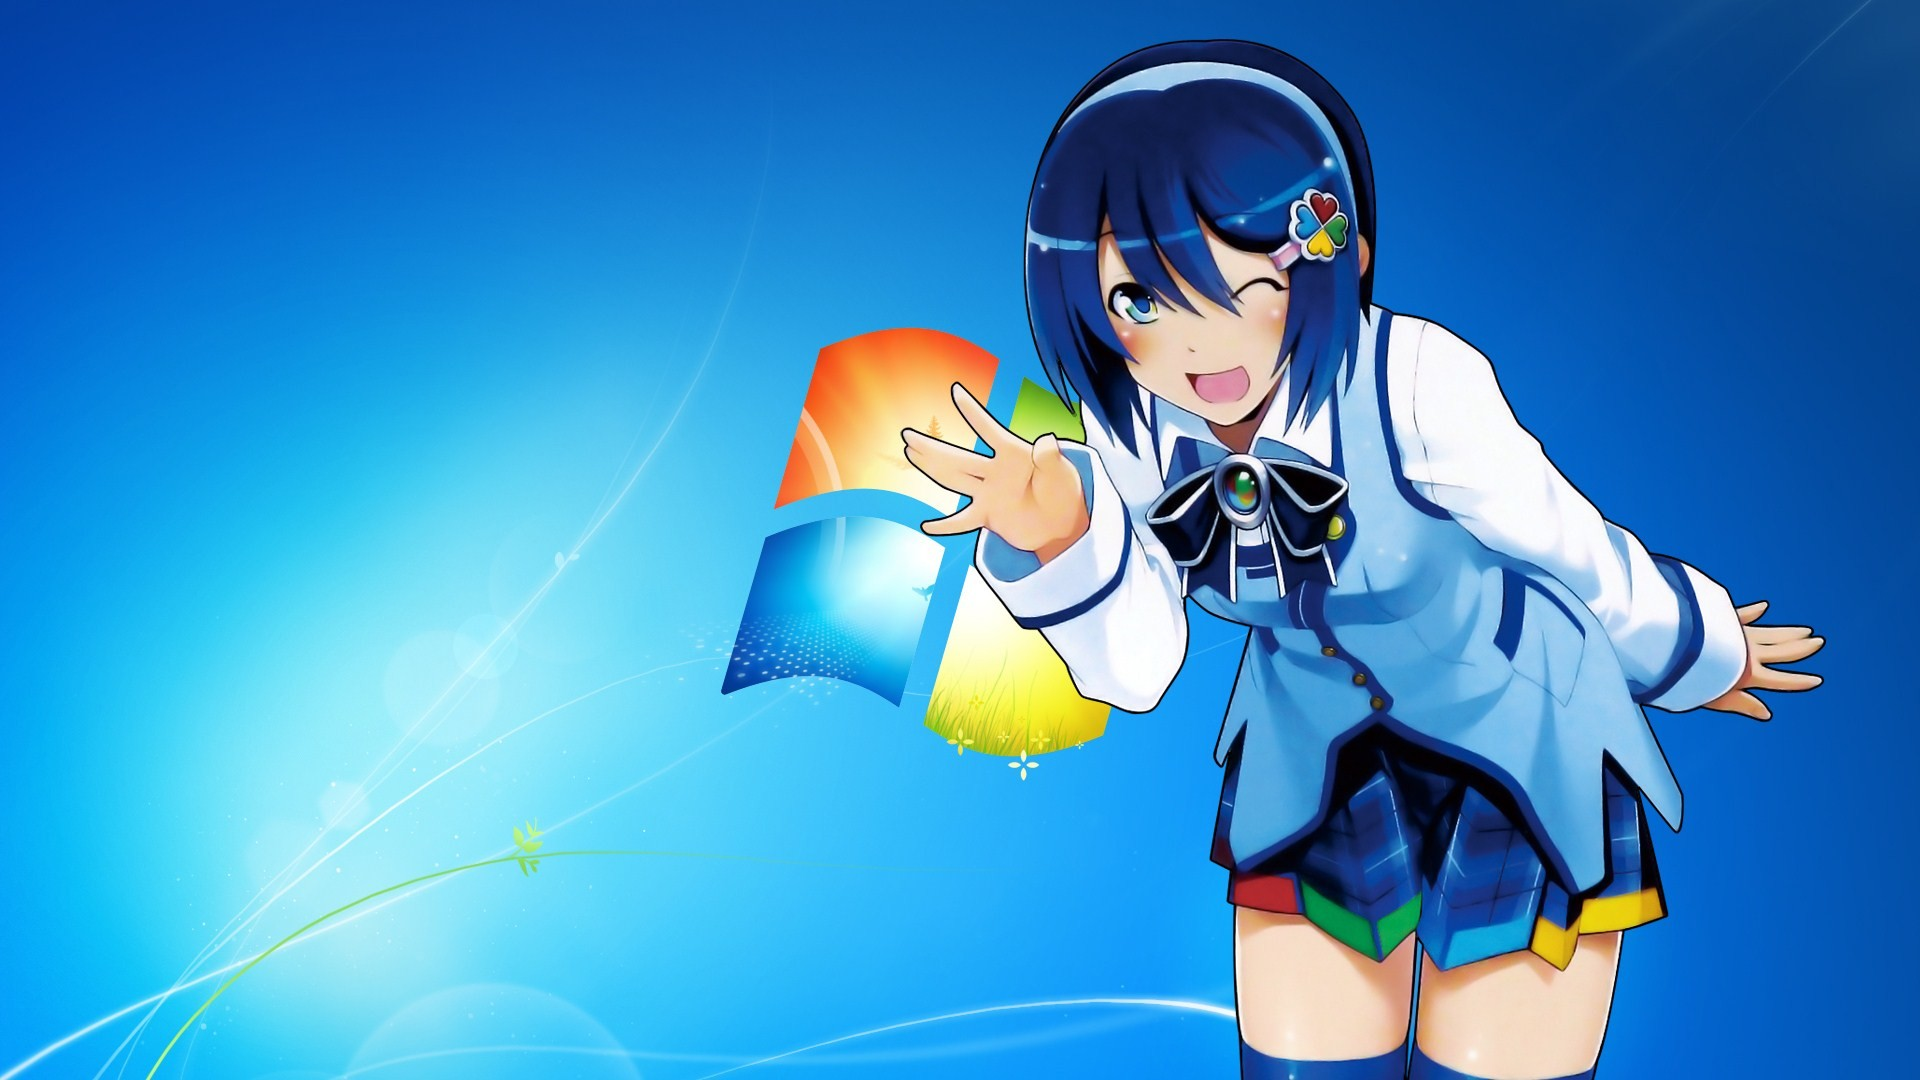 Anime Wallpaper For Windows 8 83 Images